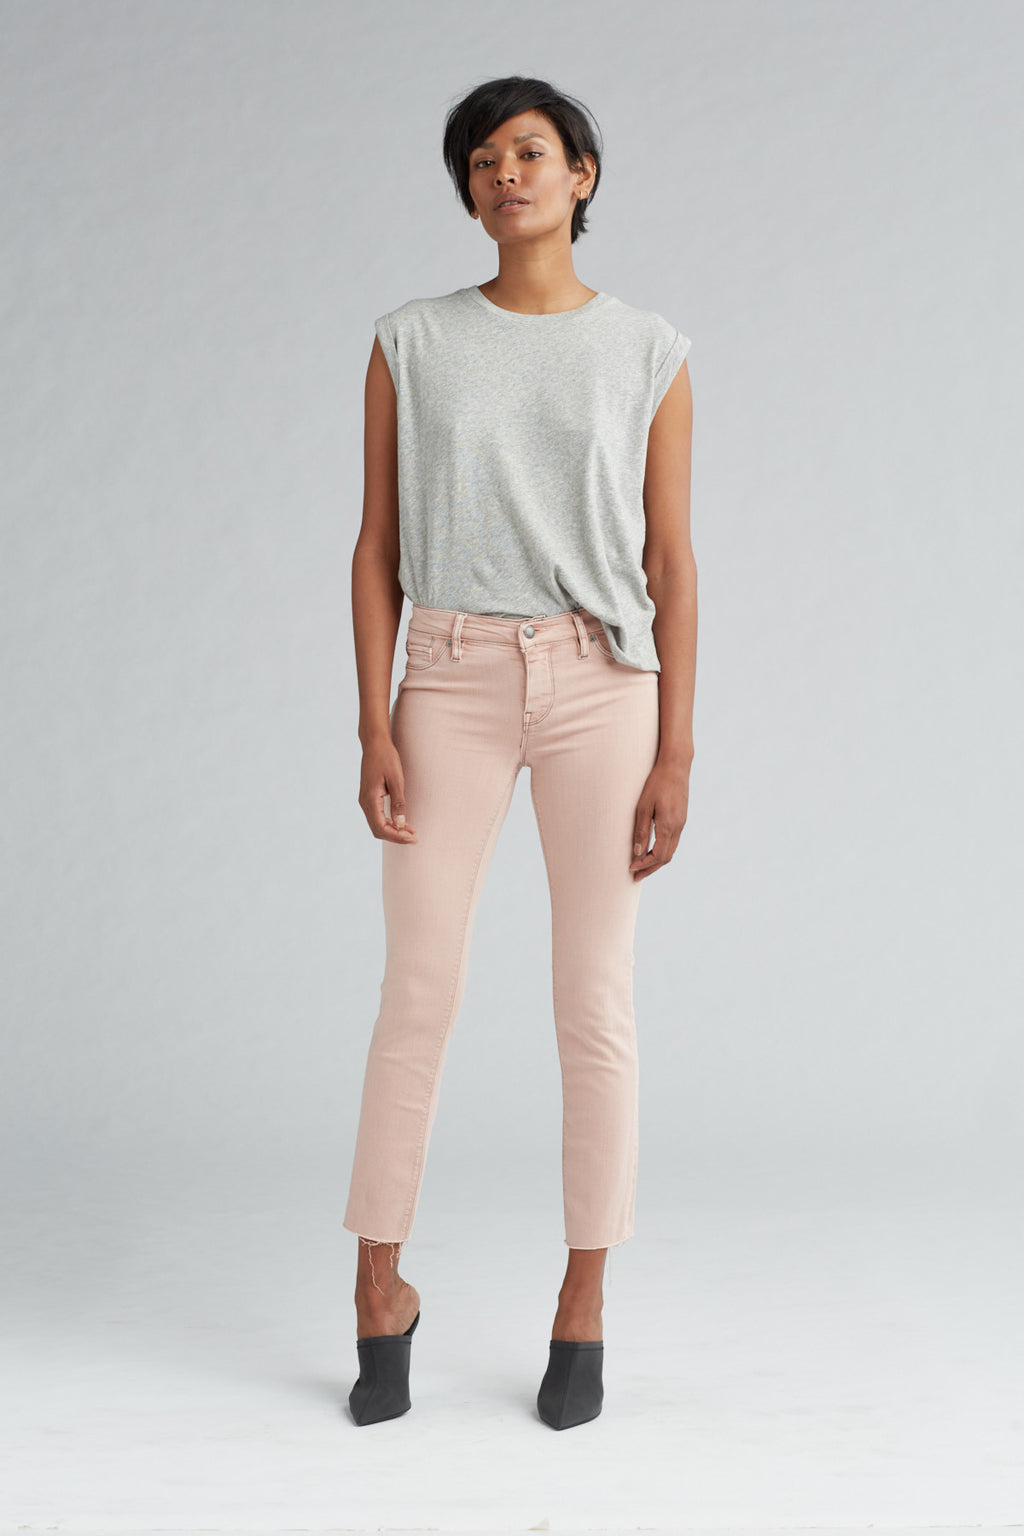 TALLY MIDRISE SKINNY CROP JEAN - LUCERNE - Image 1